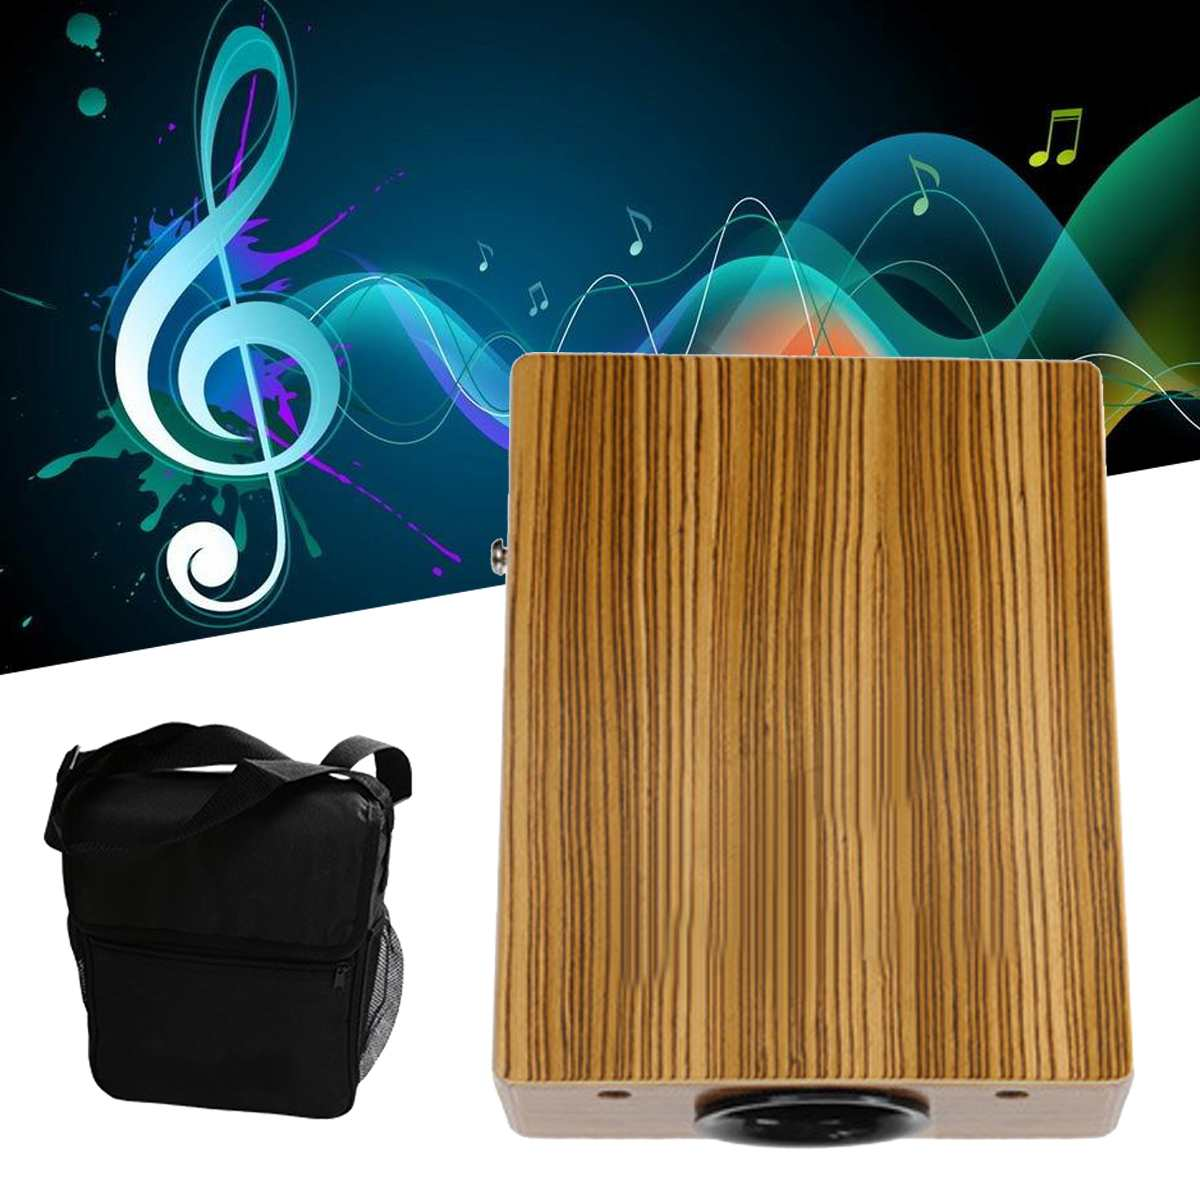 Cajon Drum Boxing Percussion Box Hand Drum with Braces Bag Adults Party Traveling Musical Percussion Instruments EntertainmentCajon Drum Boxing Percussion Box Hand Drum with Braces Bag Adults Party Traveling Musical Percussion Instruments Entertainment